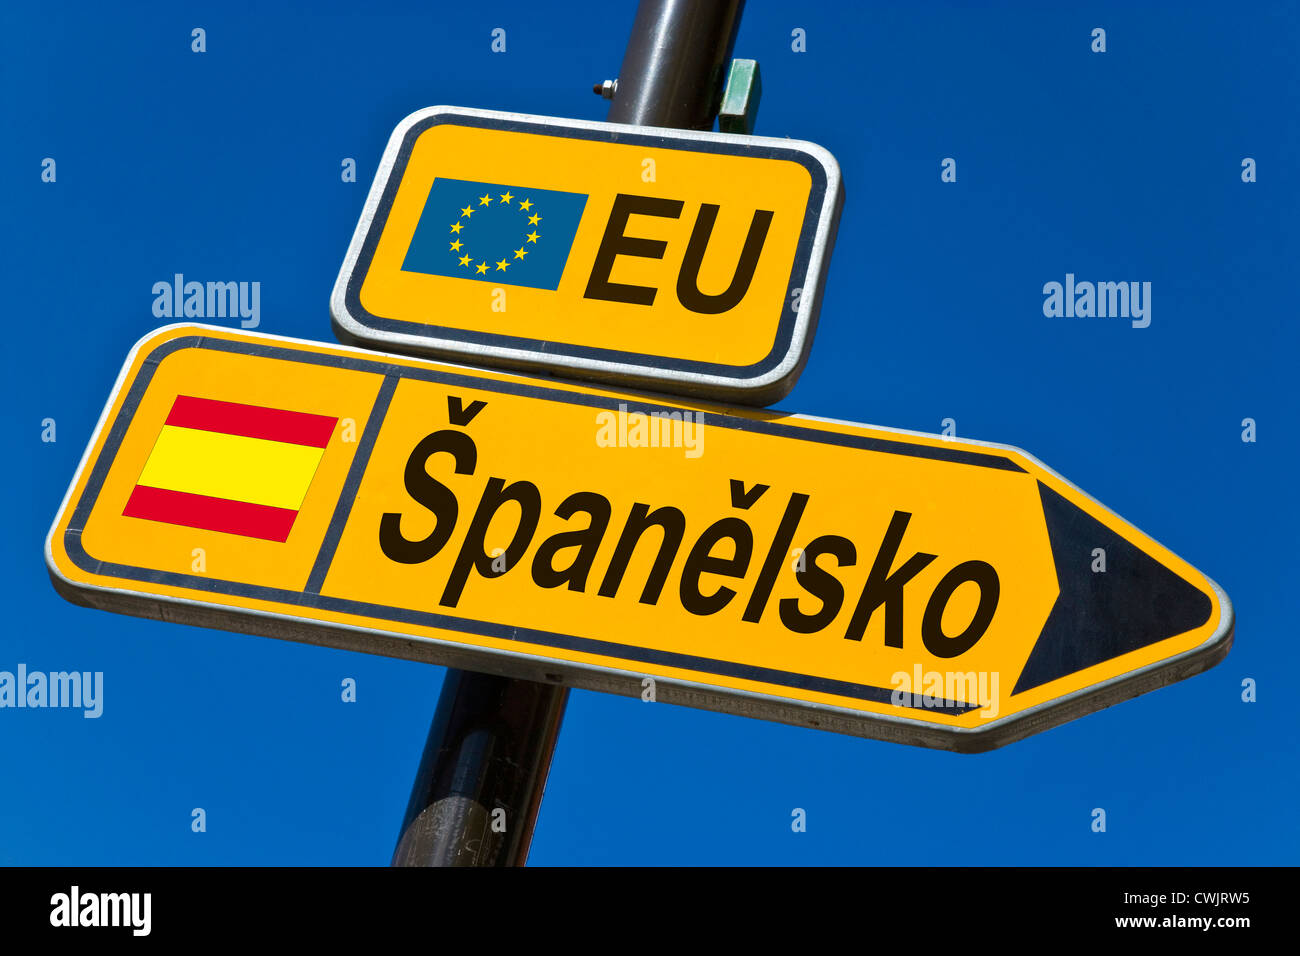 European Union and flag of  Spain - Stock Image